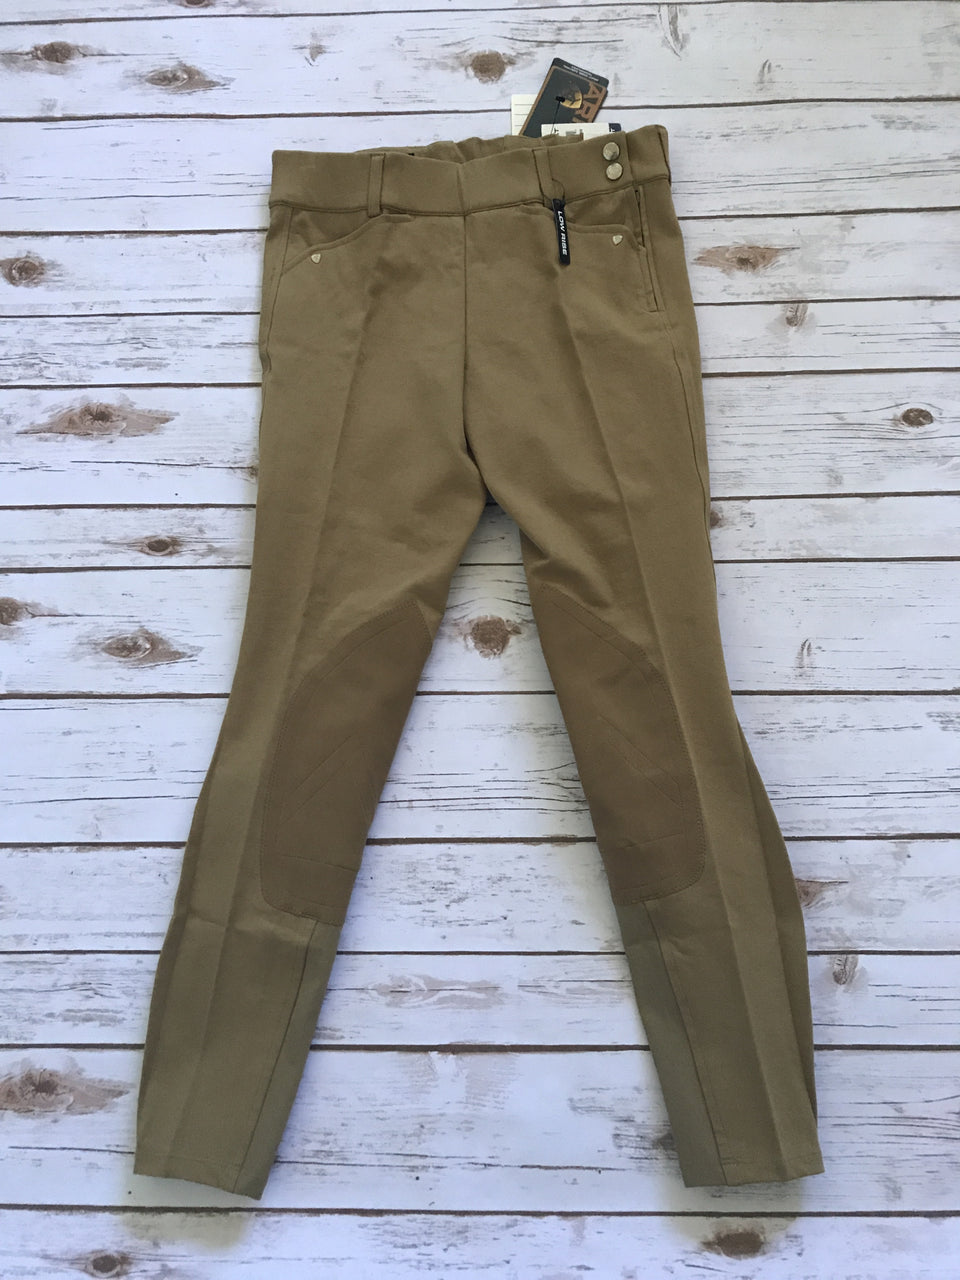 Ariat Heritage Low Rise Side Zip Breeches in Khaki - 22R